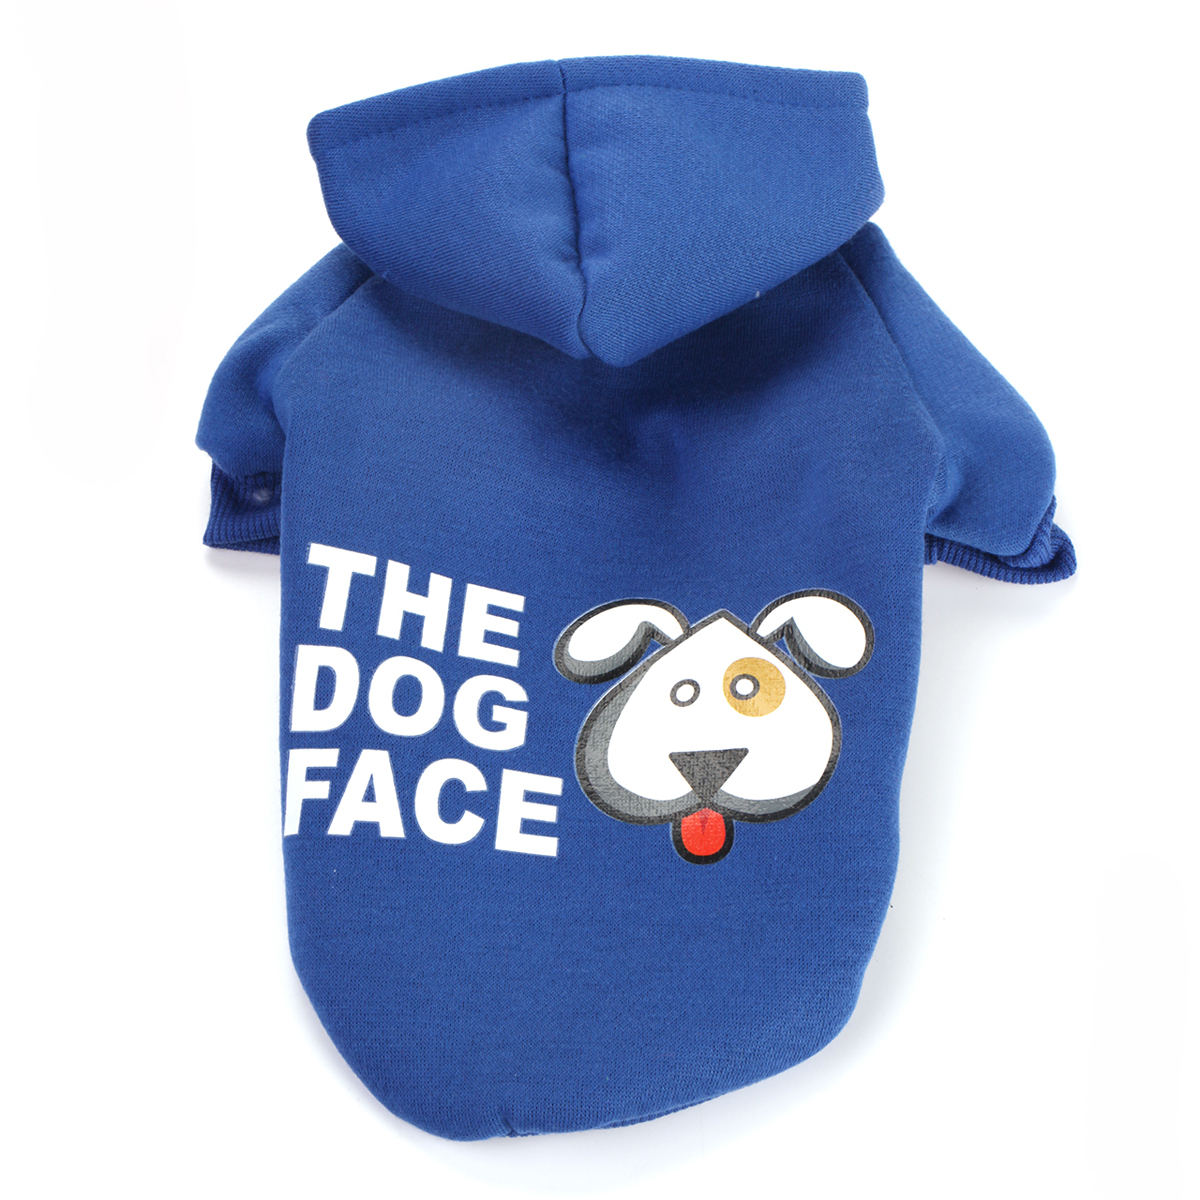 Buy Dog Clothes Hoodies,dog hoodies,dog hoodies in low price online at Petindiaonline